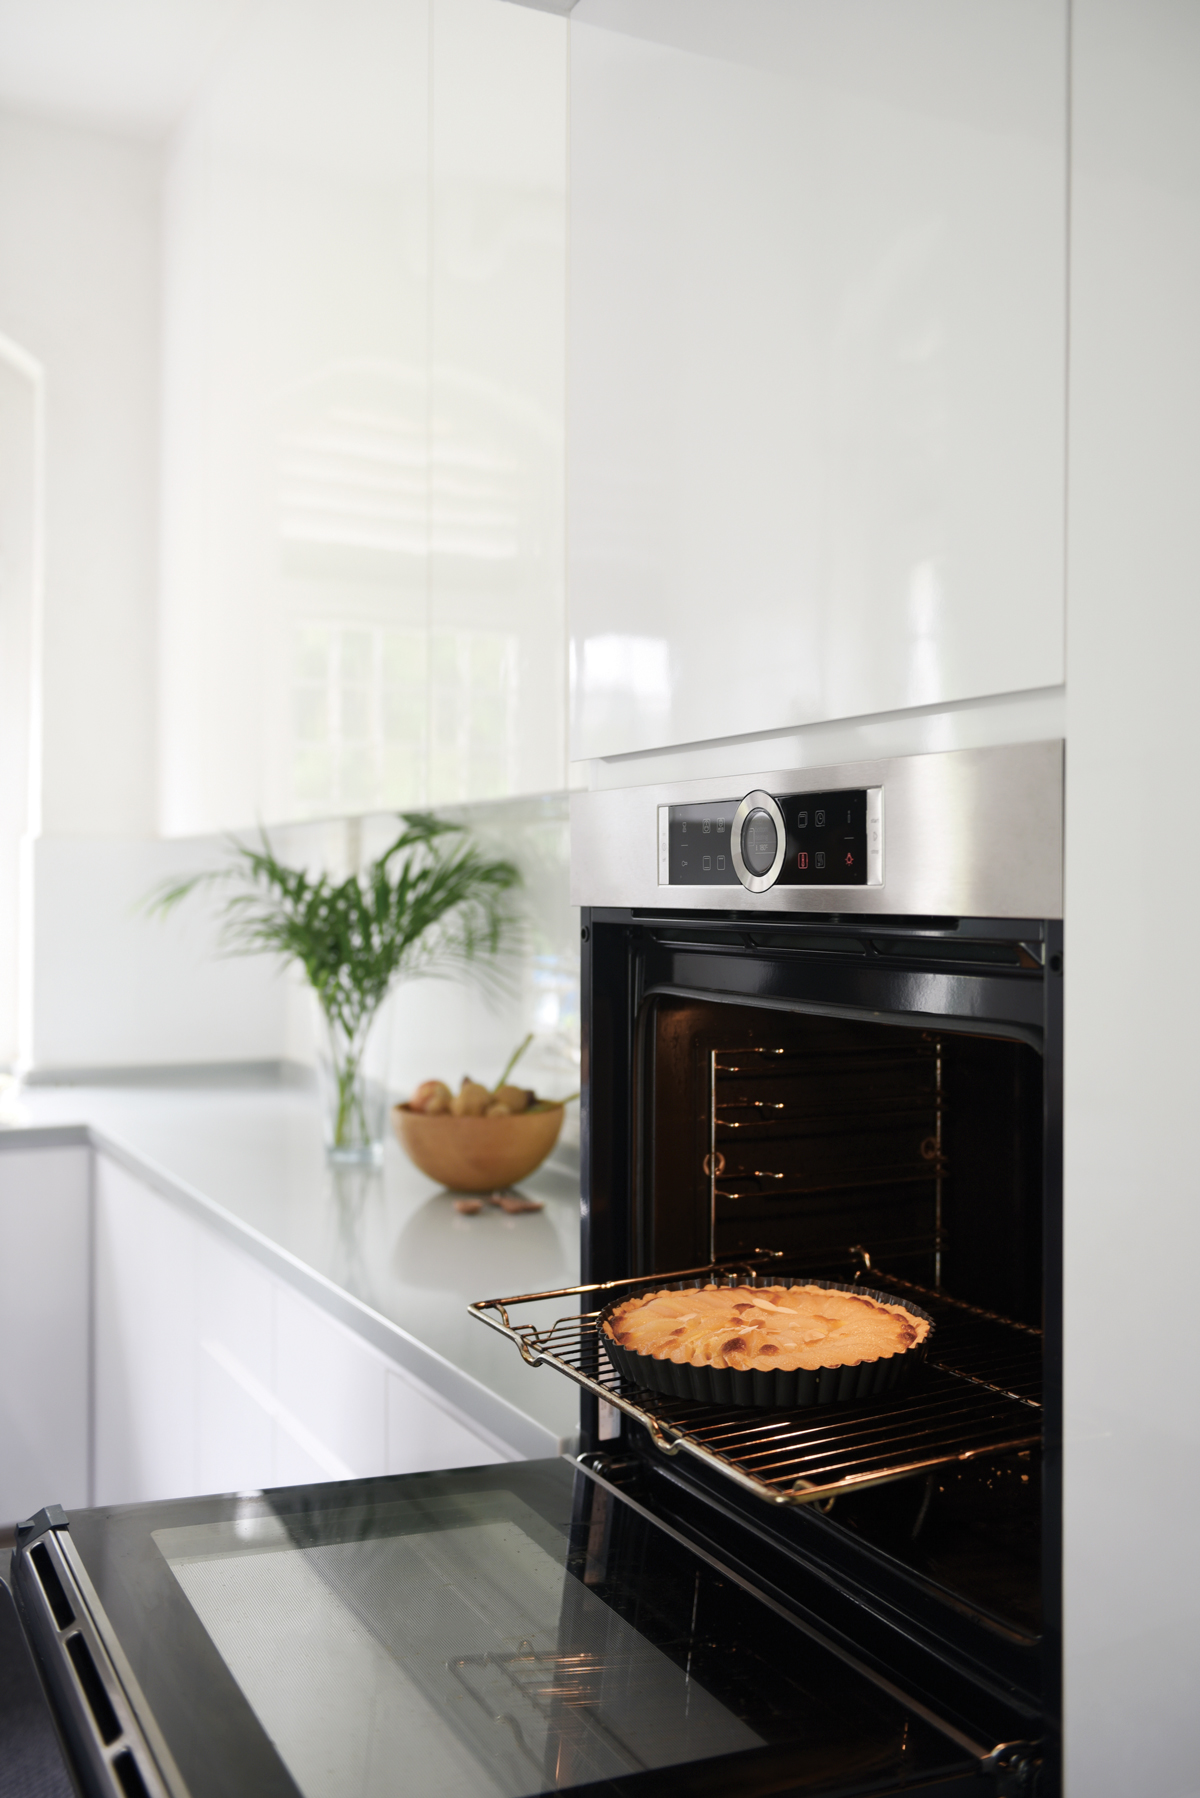 Bloesem living | Kitchen renovation with Bosch Home SG | Series 8 Ovens